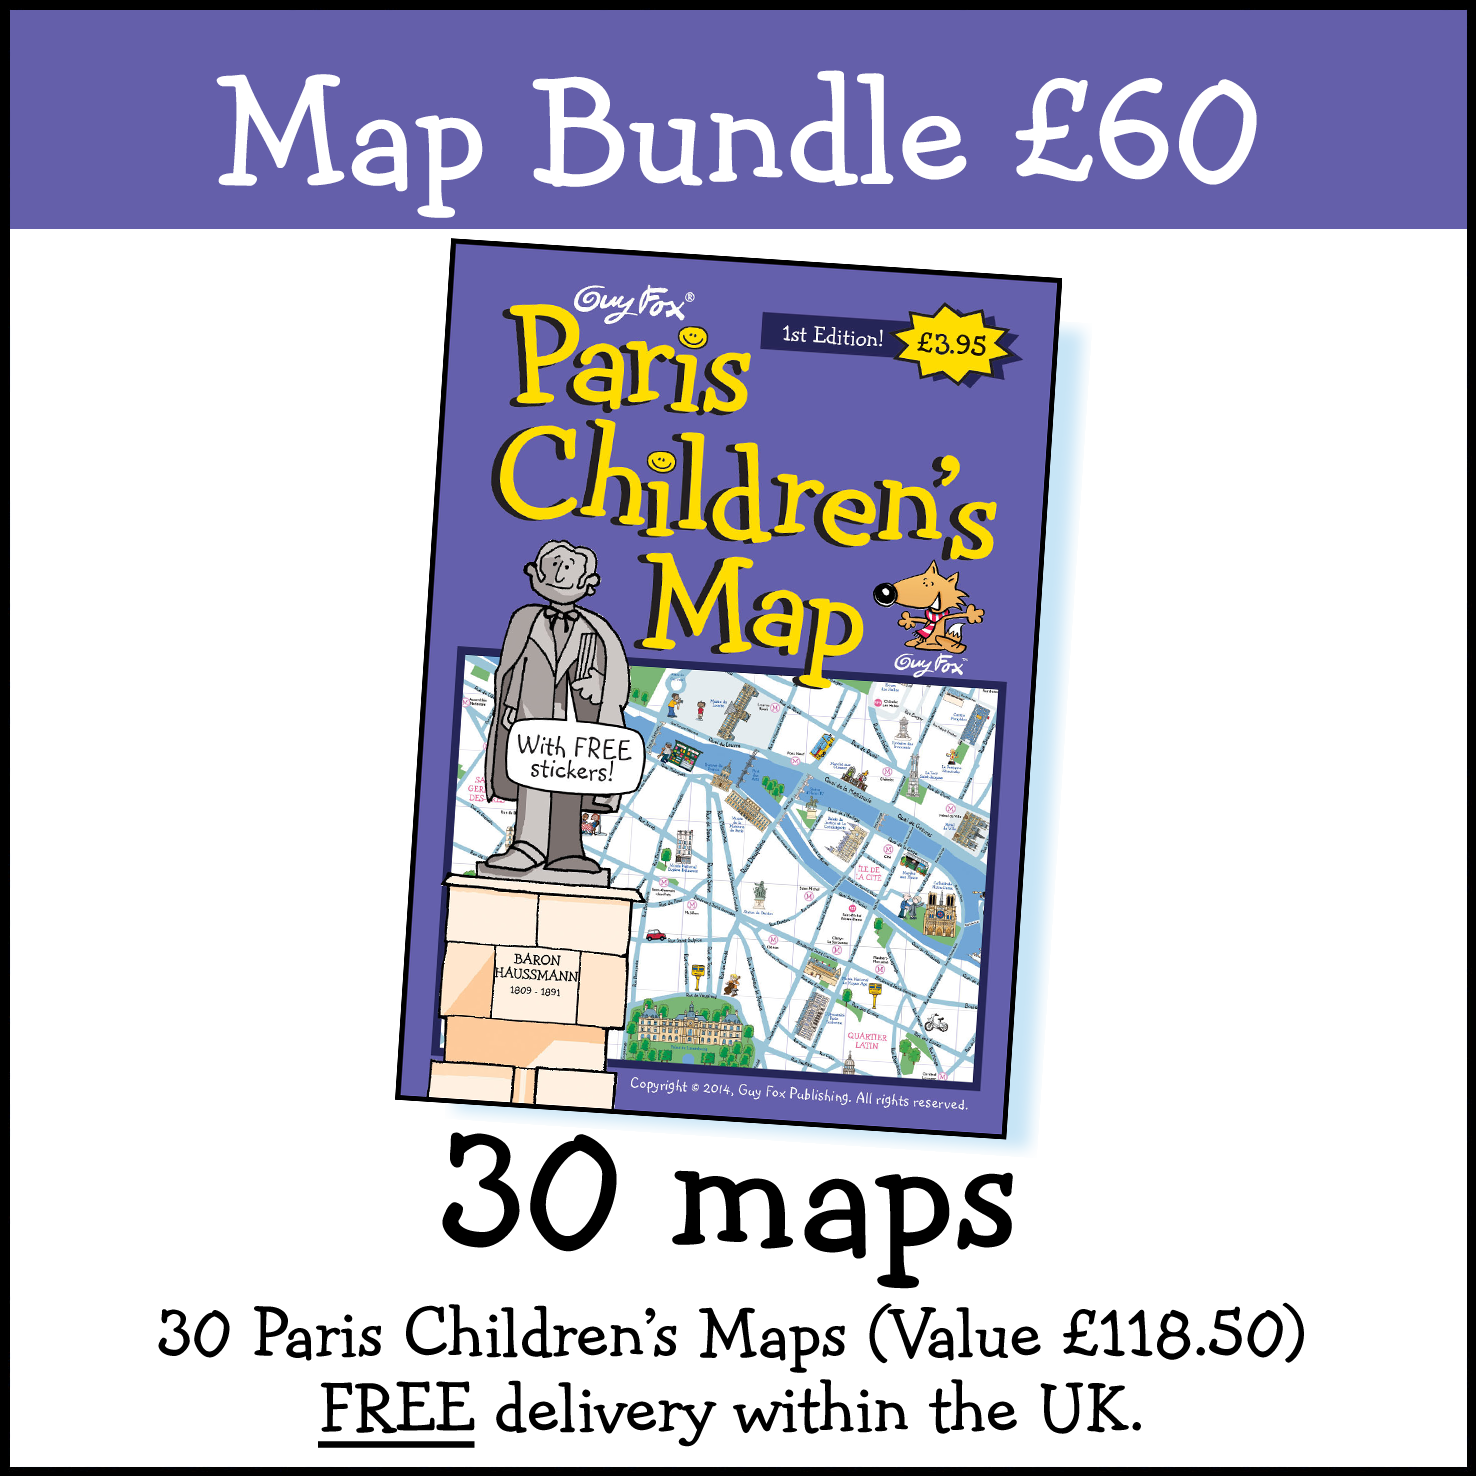 30 Maps for £60